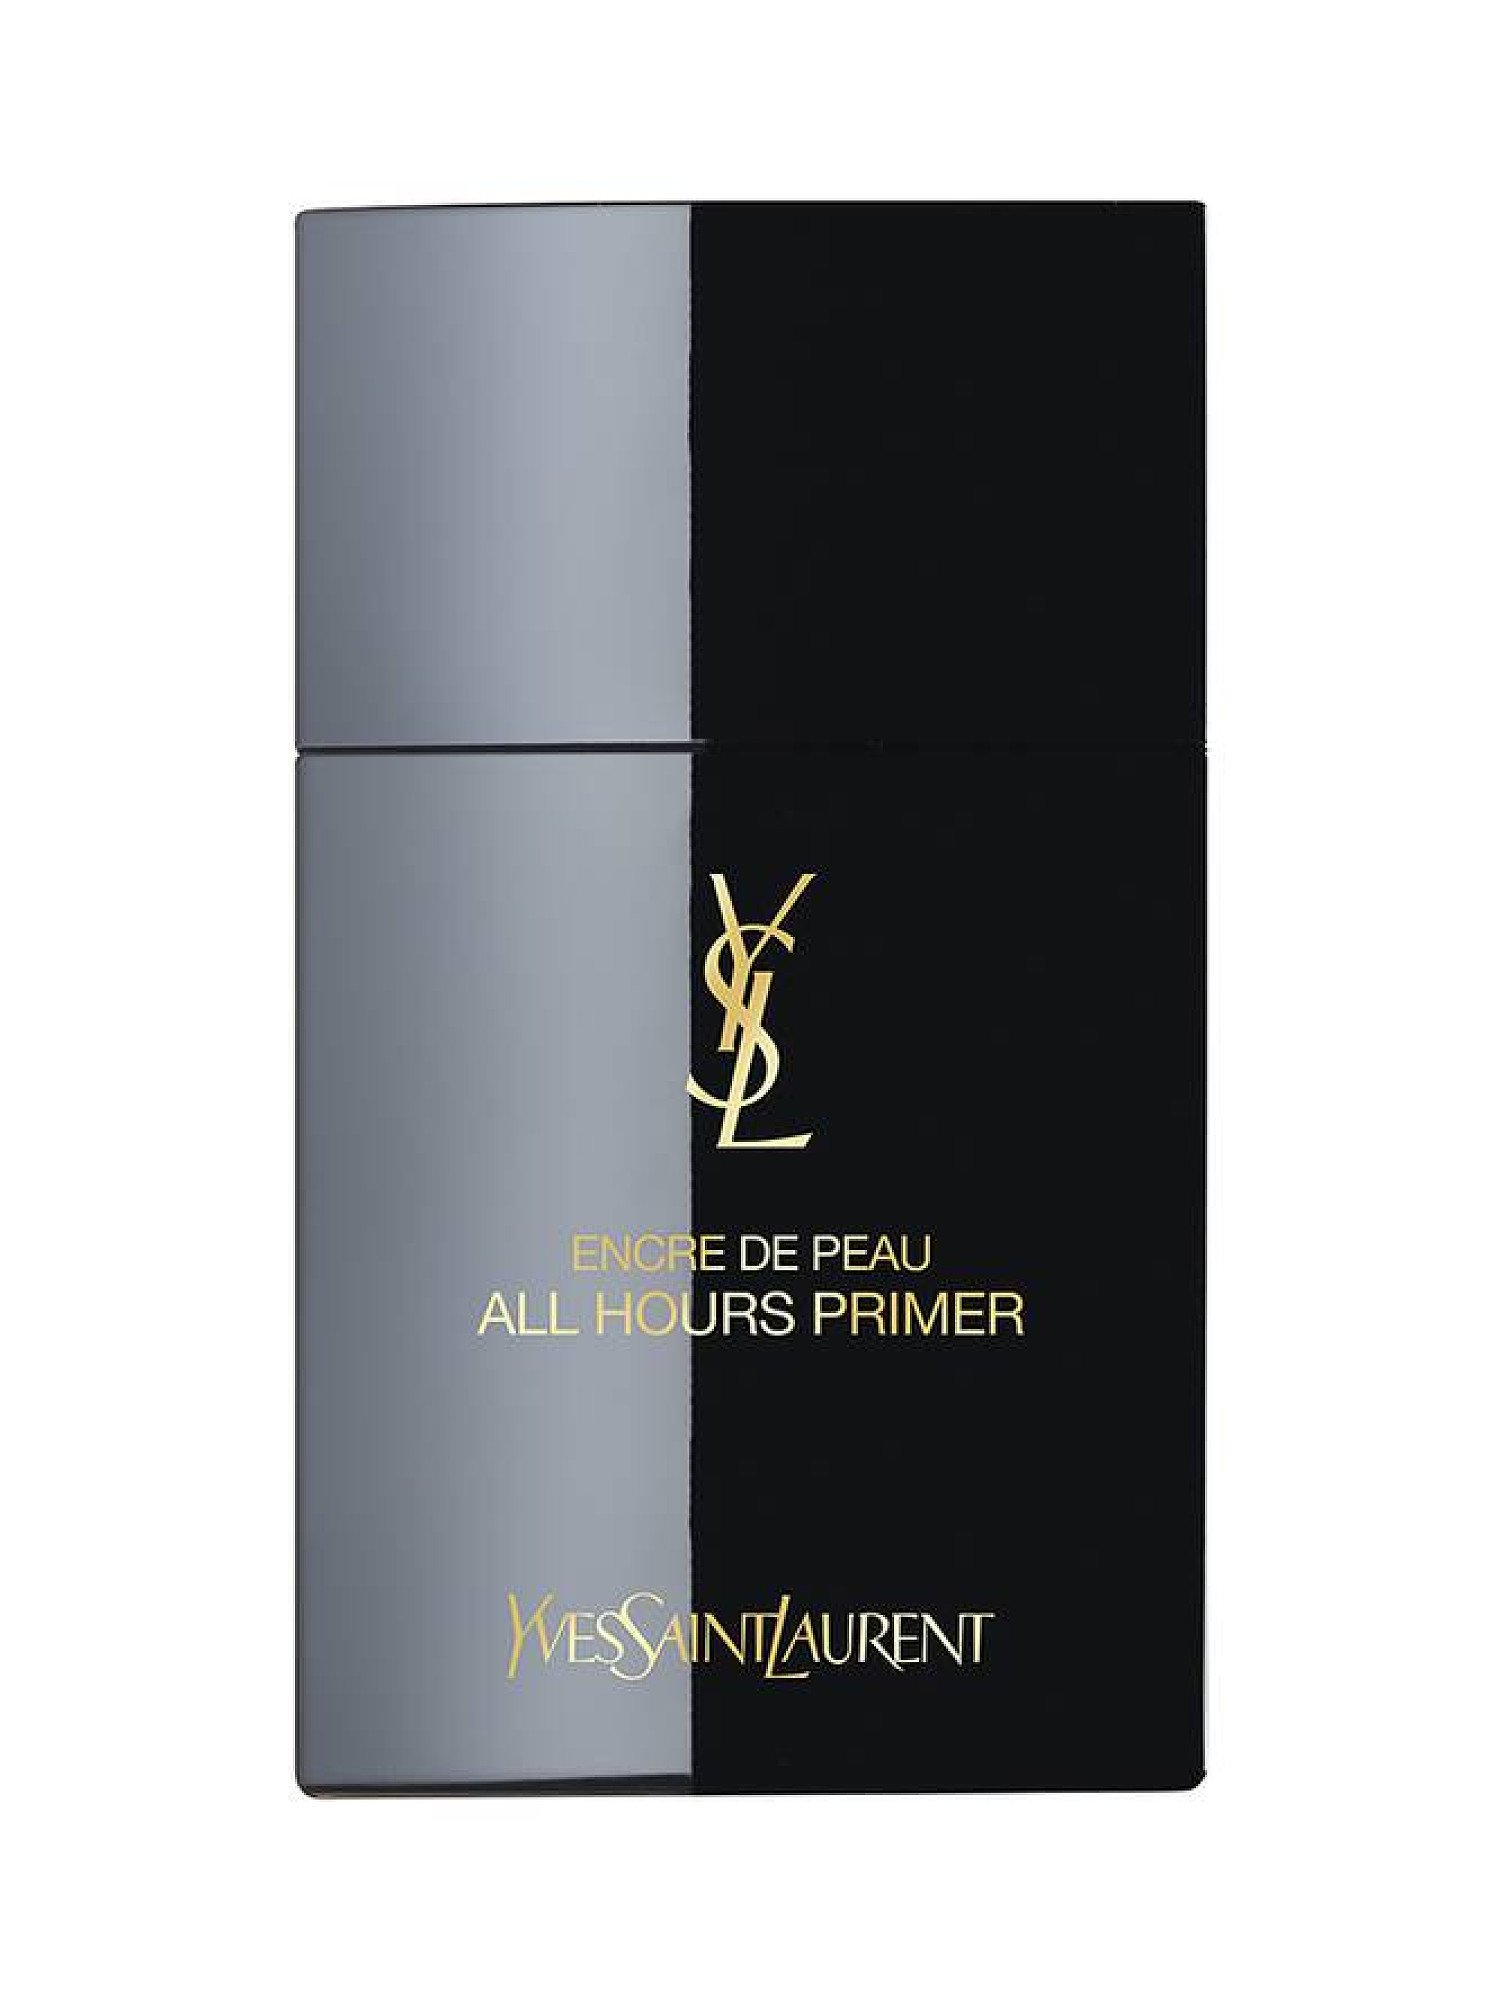 LAST CHANCE TO BUY - ALL HOURS PRIMER SPF18!